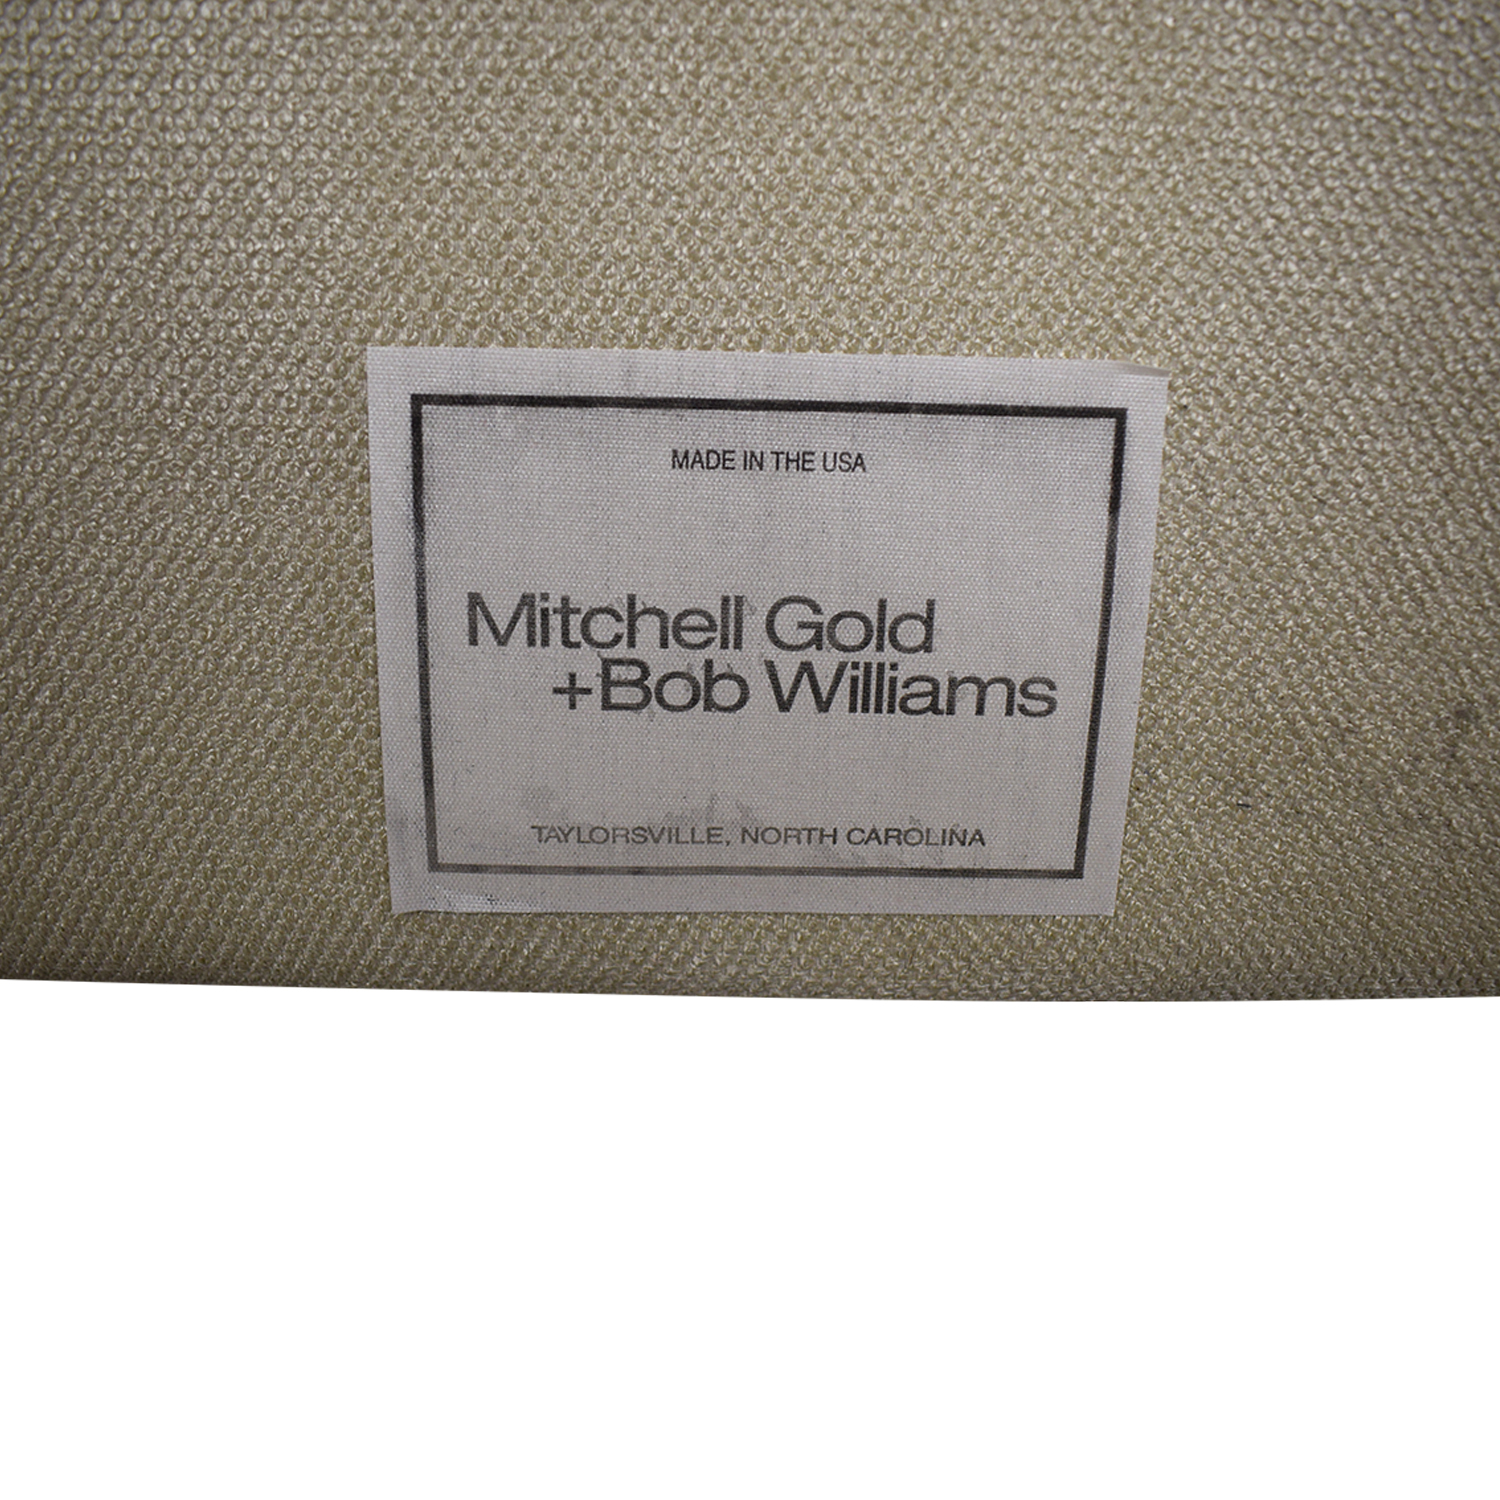 Mitchell Gold + Bob Williams Mitchell Gold + Bob Williams Celina King Bed Beds